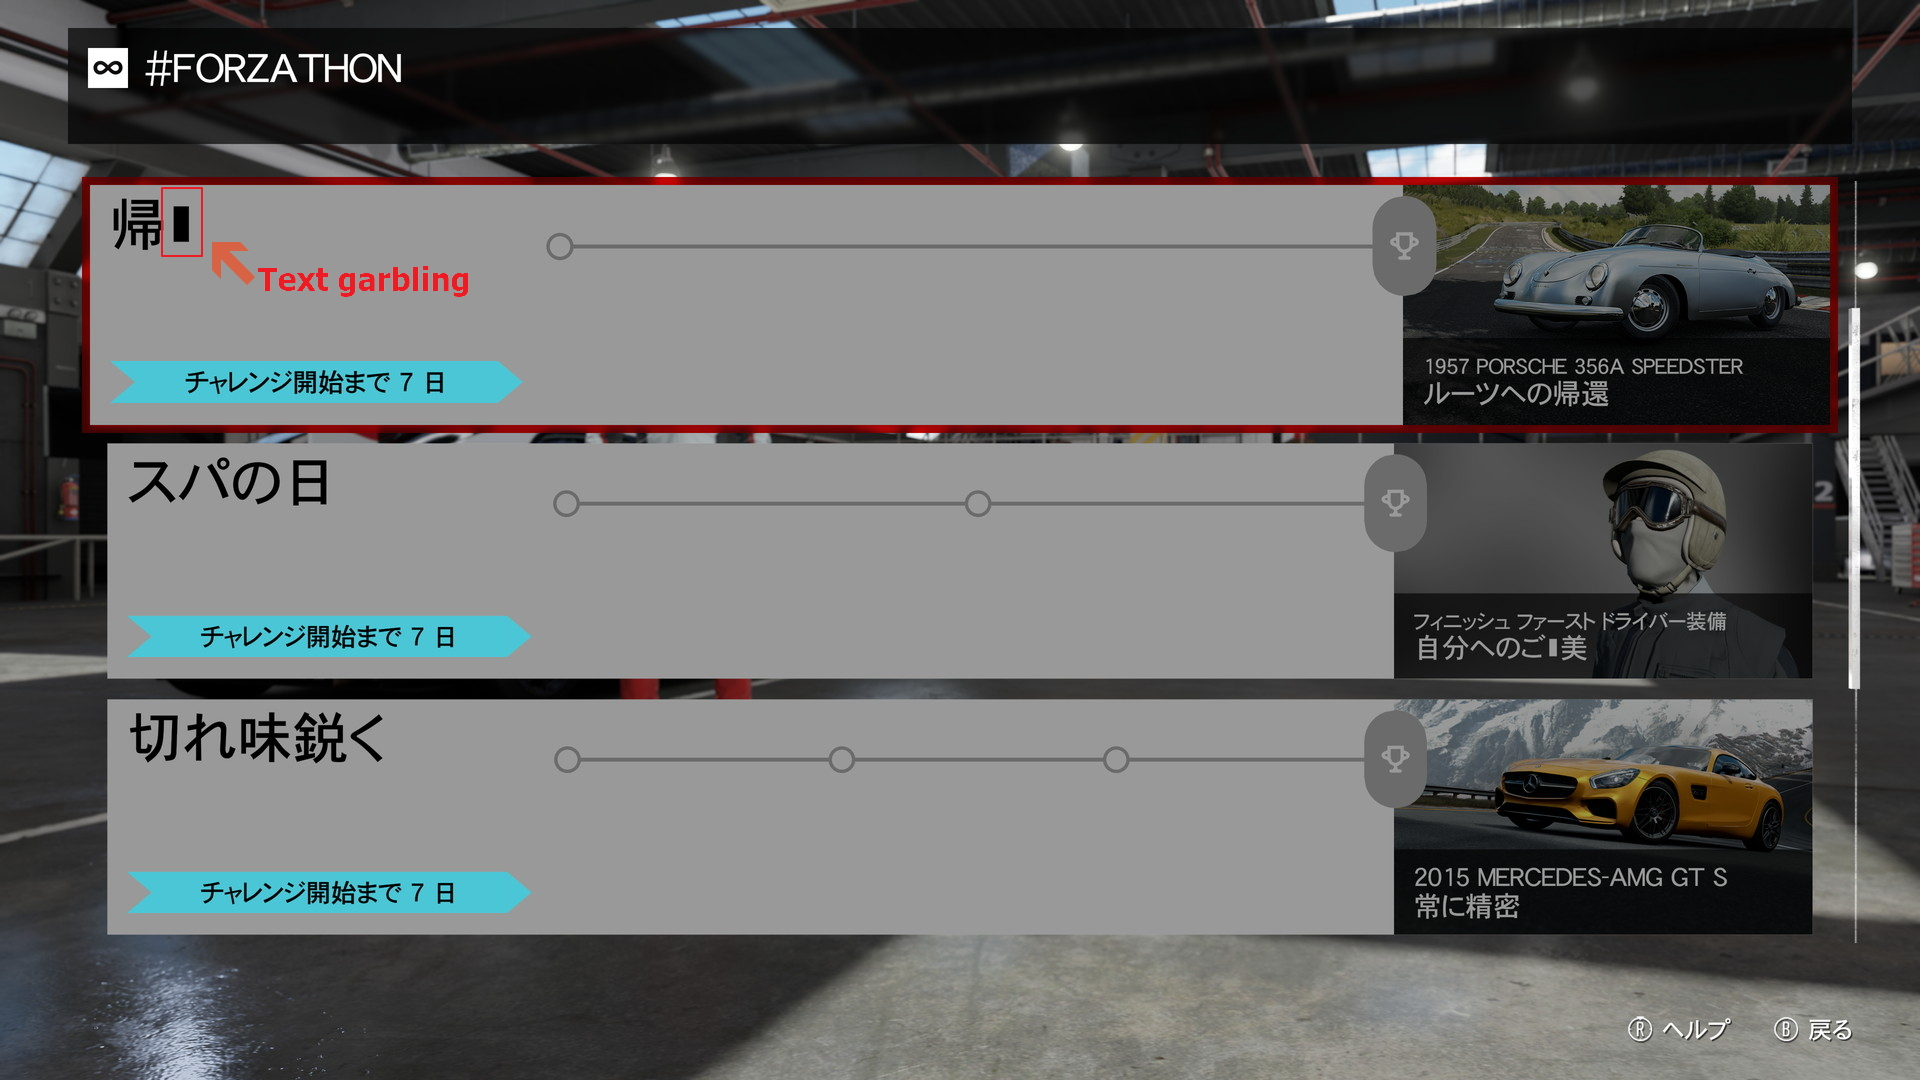 a1b85a93ee7 INVESTIGATING  There is a garbled character on  Forzathon s screen ...